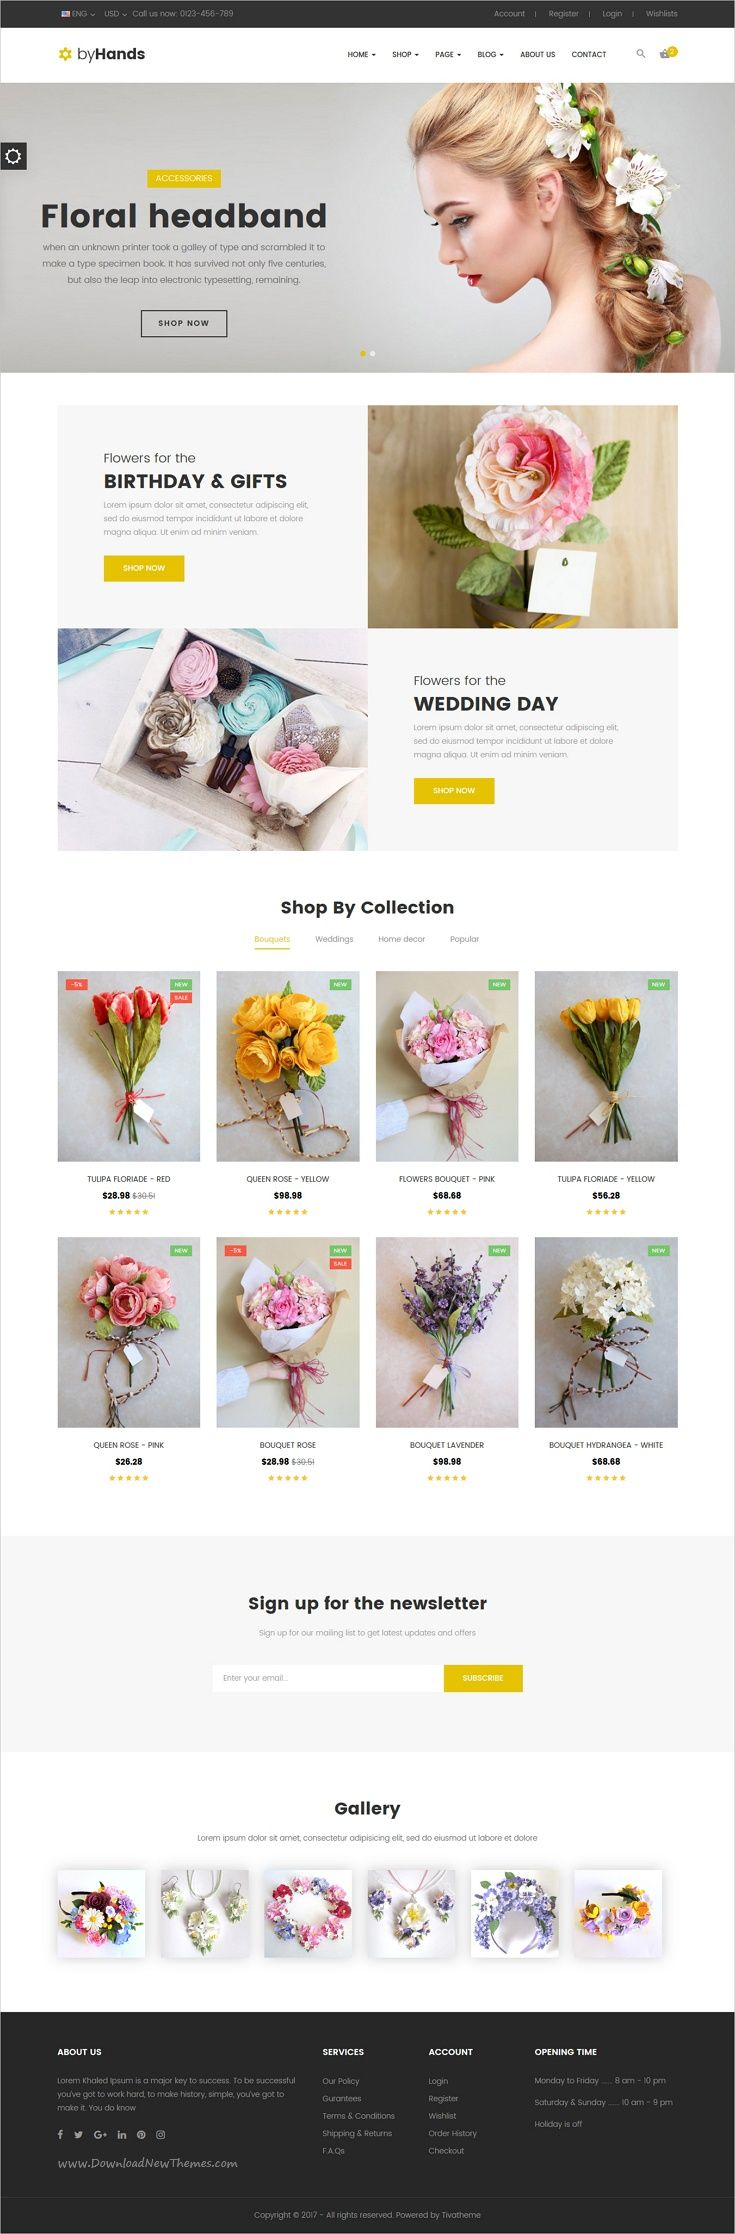 ByHands is a wonderful 3in1 responsive #HTML bootstrap template for #flower #shop eCommerce websites download now➩  https://themeforest.net/item/byhands-flower-store-html-template/19296235?ref=Datasata